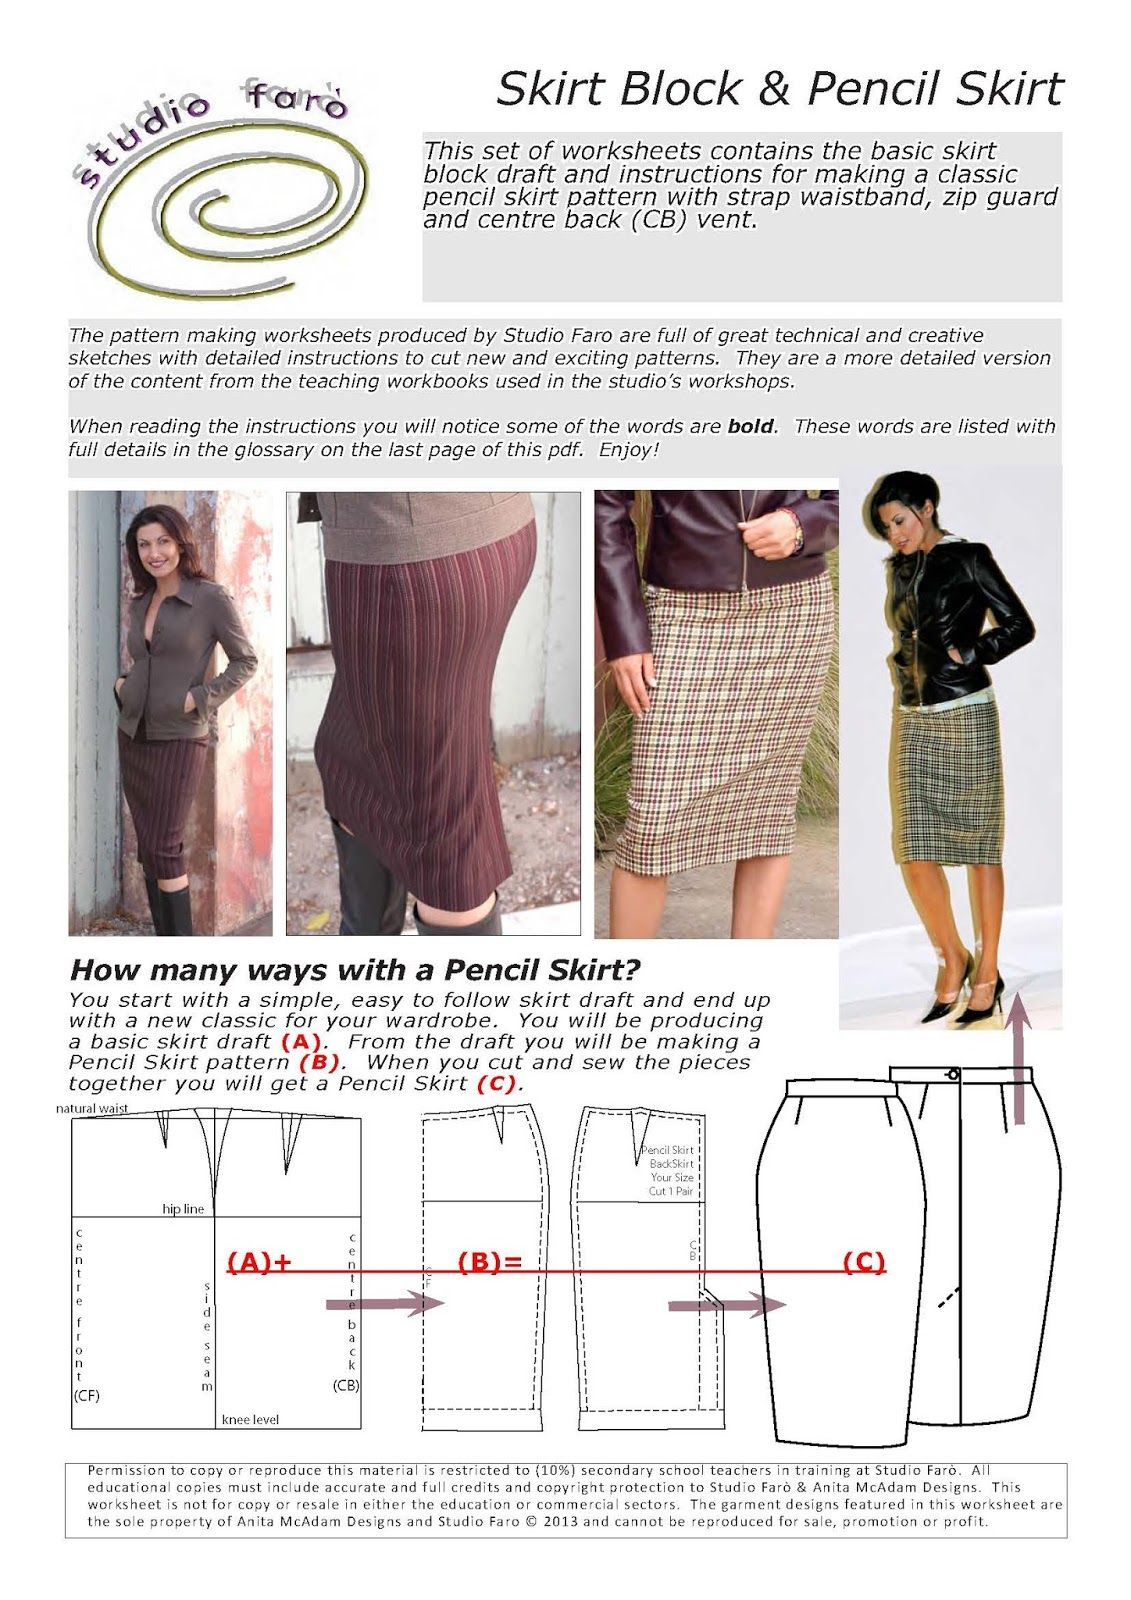 Well Suited Skirt Draft And Pencil Skirt Pattern